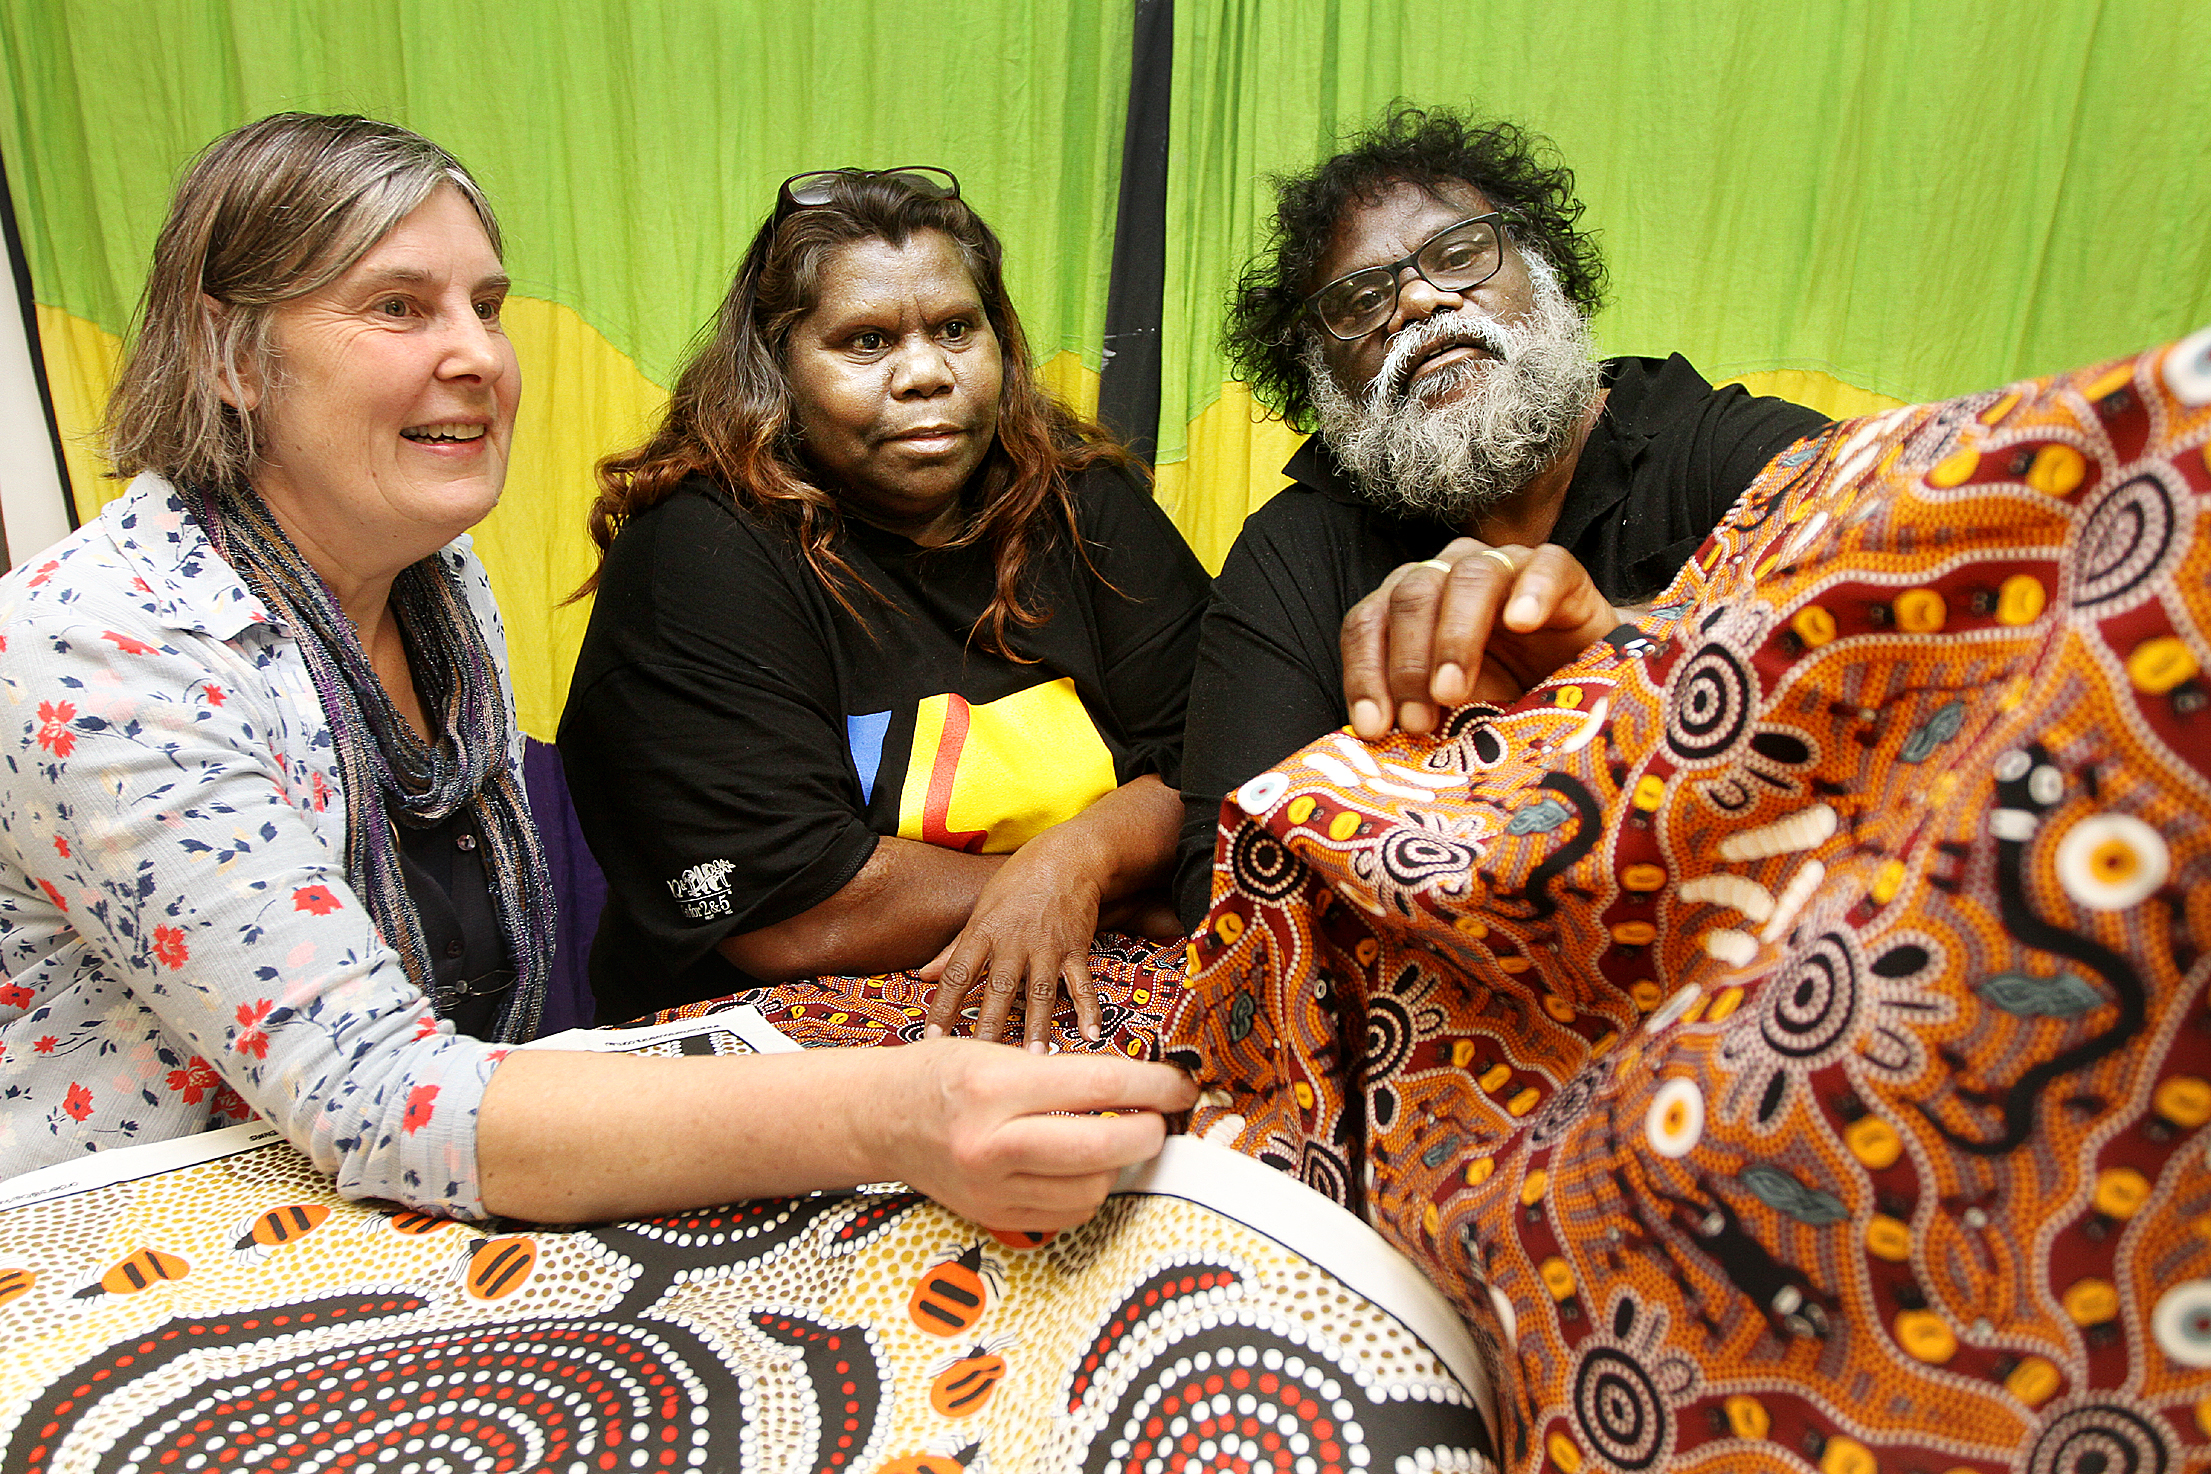 Geoffrey and Annette Stokes, of the Wongutha Tribal Group, viewing textiles at the Looking Well community arts centre in Bentham, with Alison Clough